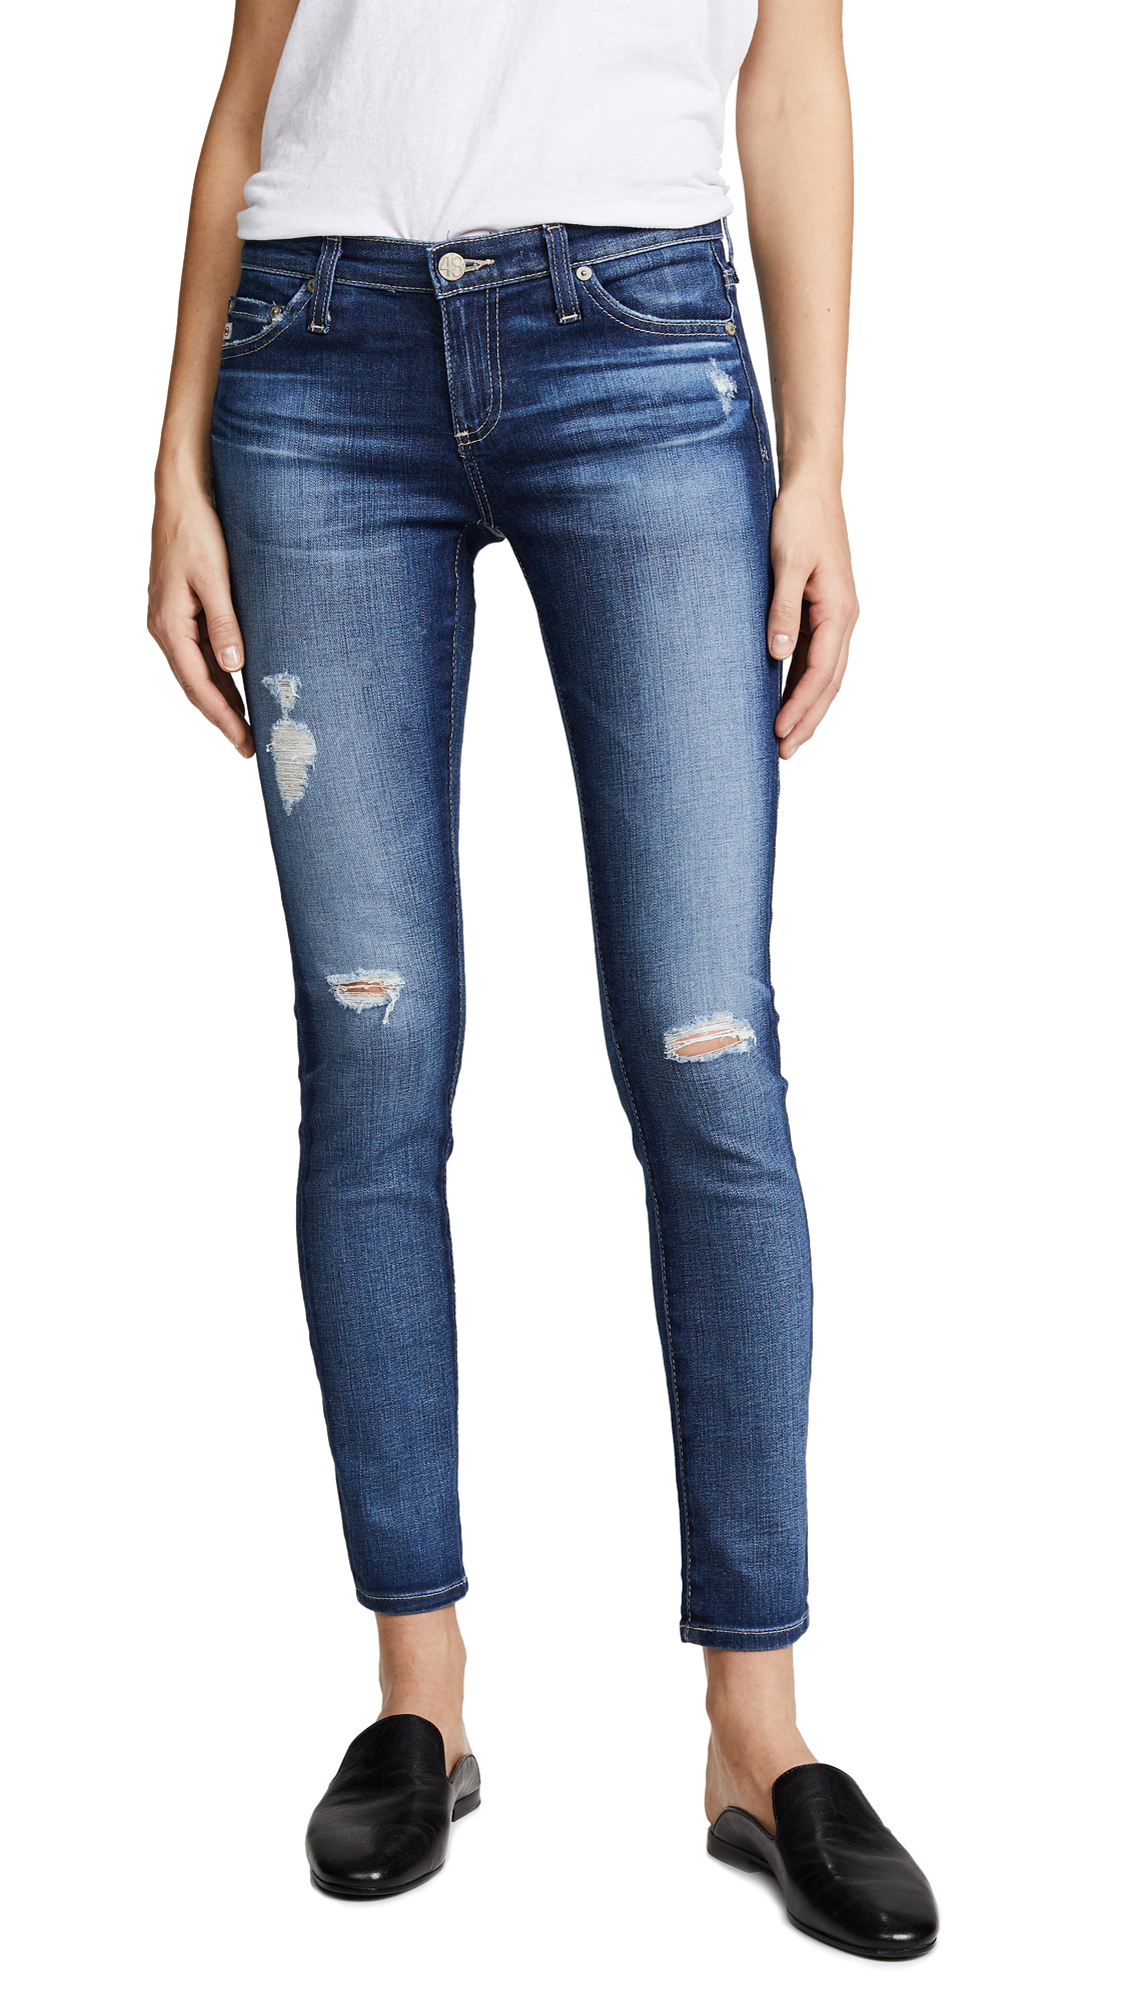 AG Ankle Legging Jeans - 11 Year Swap Meet